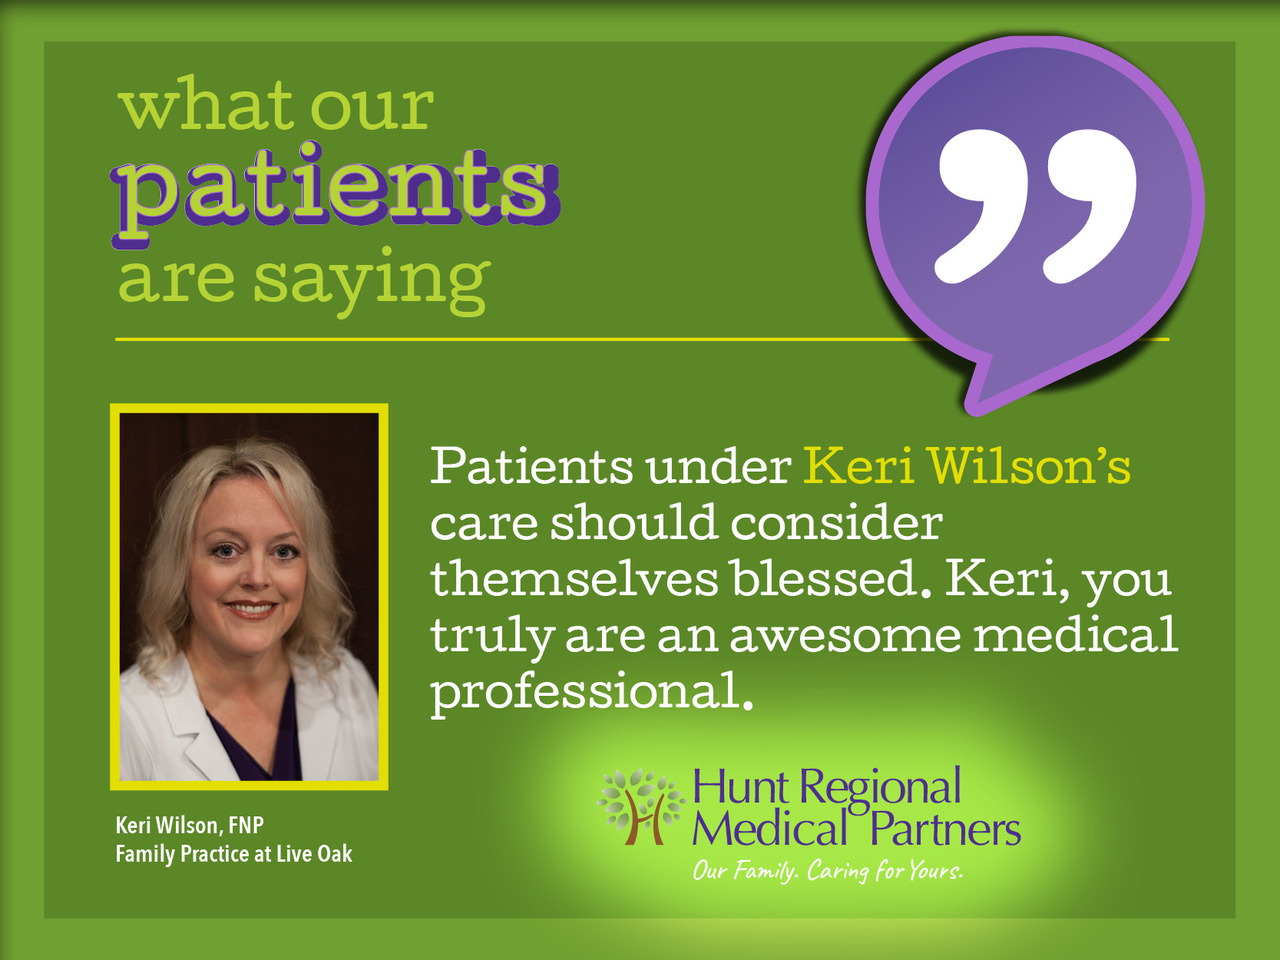 what our patients are saying   Patients under Keri Wilson's care should consider themselves blessed. Keri, you truly are an awesome medical professional.   Keri Wilson, FNP, Family Practice at Live Oak   Hunt Regional Medical Partners   Our Family. Serving Yours.